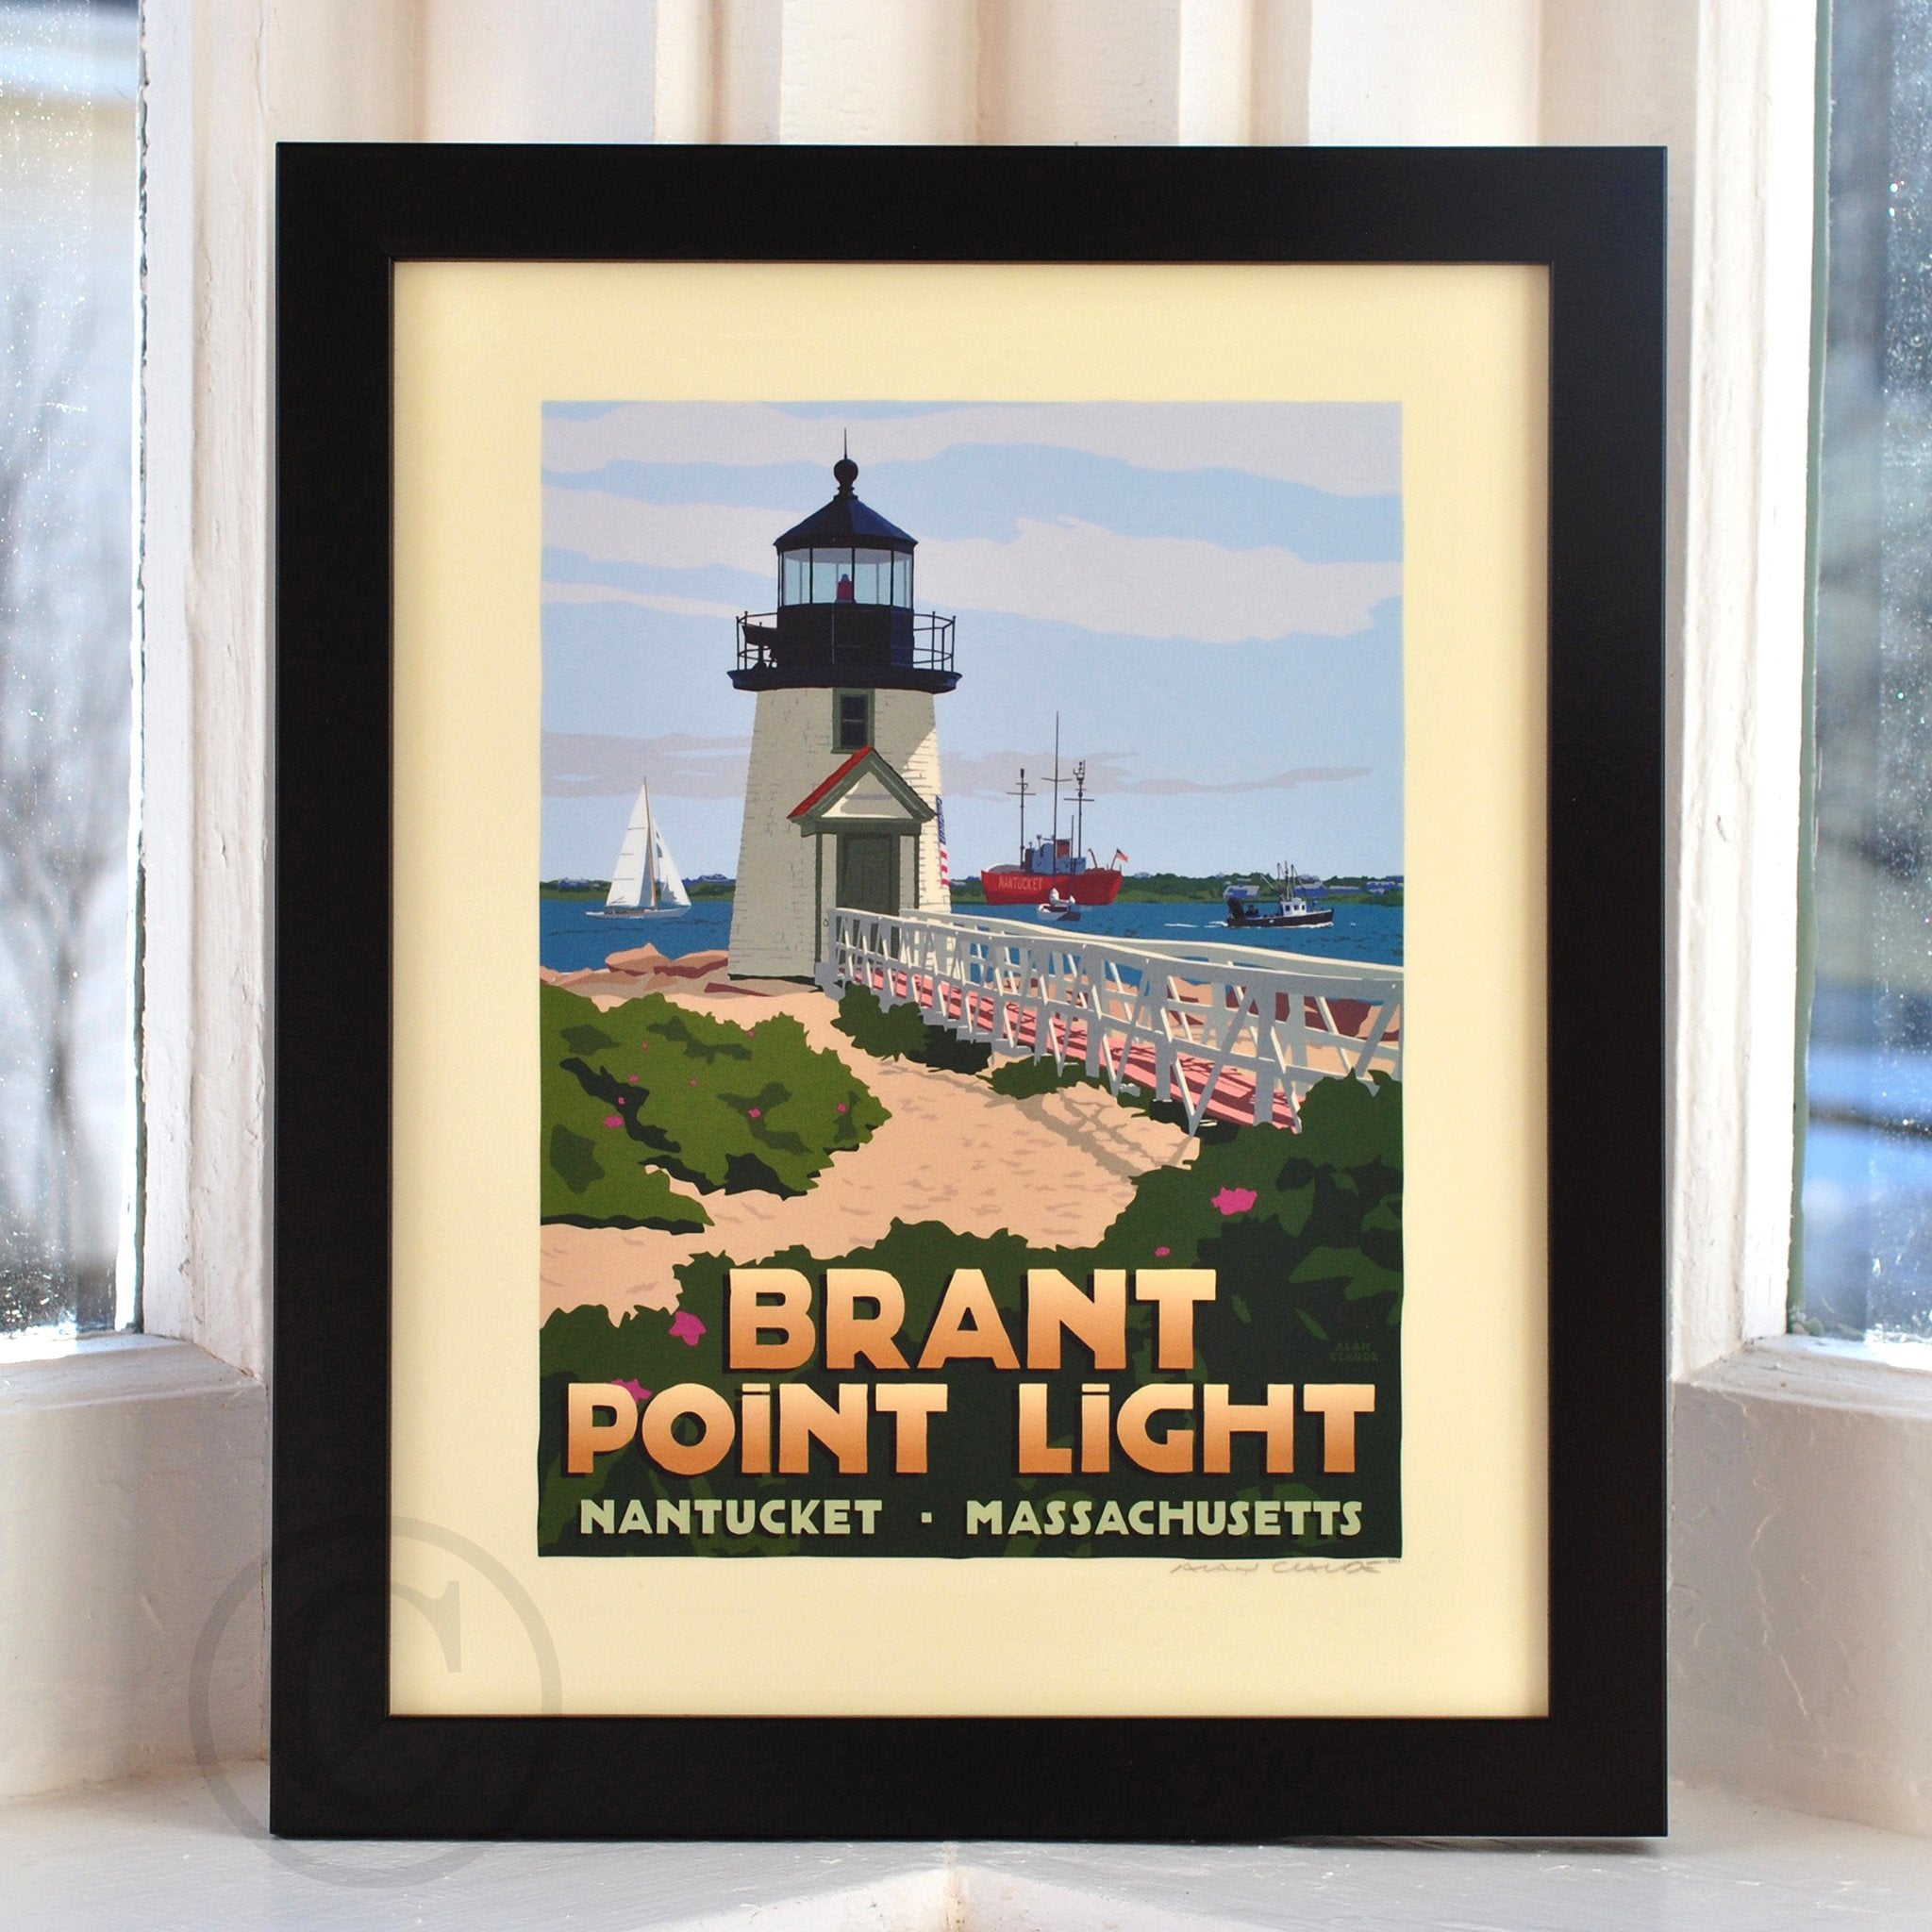 "Brant Point Light Art Print 8"" x 10"" Framed Travel Poster - Massachusetts"